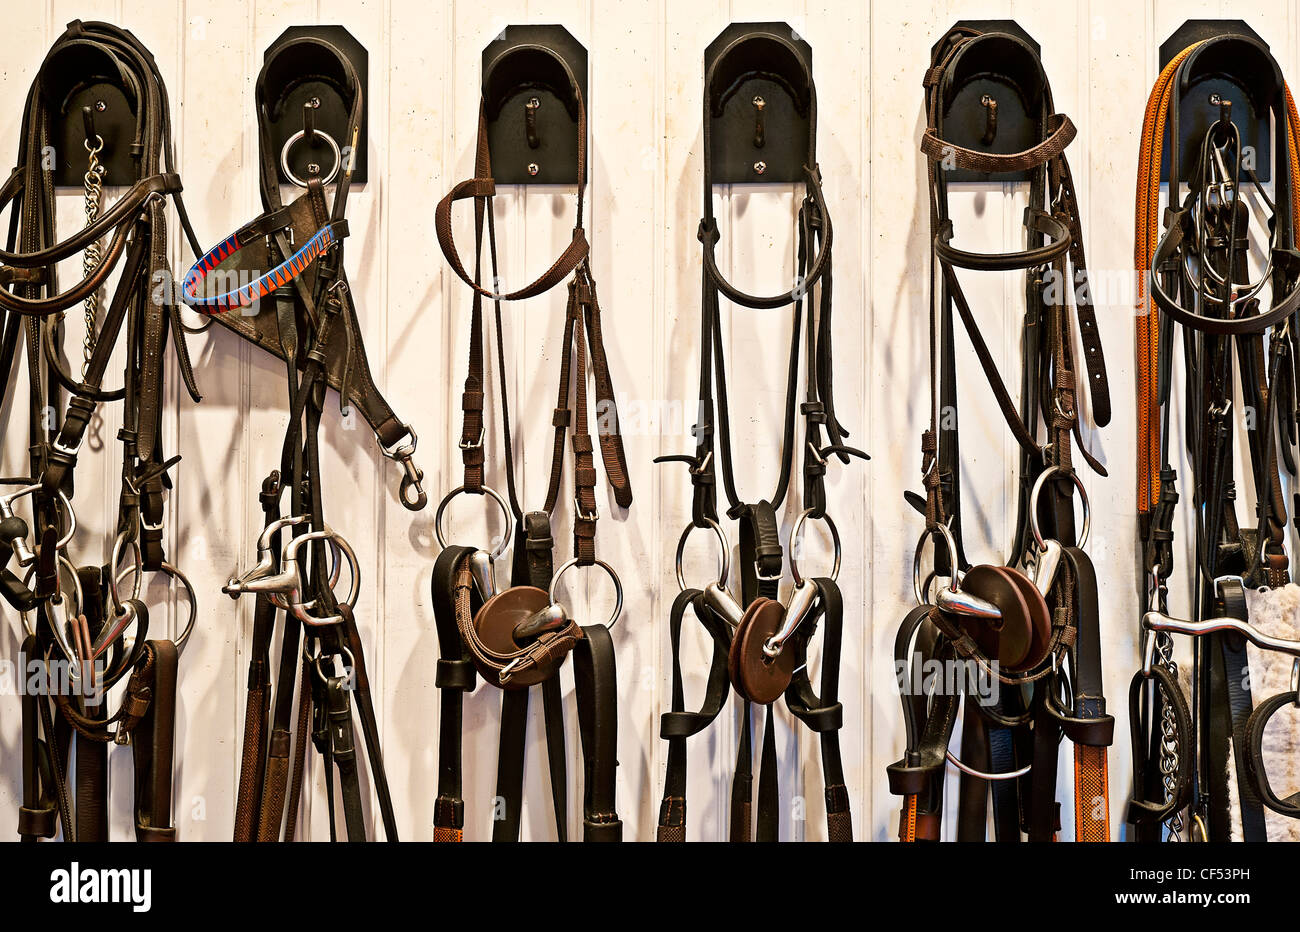 Riding gear in a stable tac room. - Stock Image